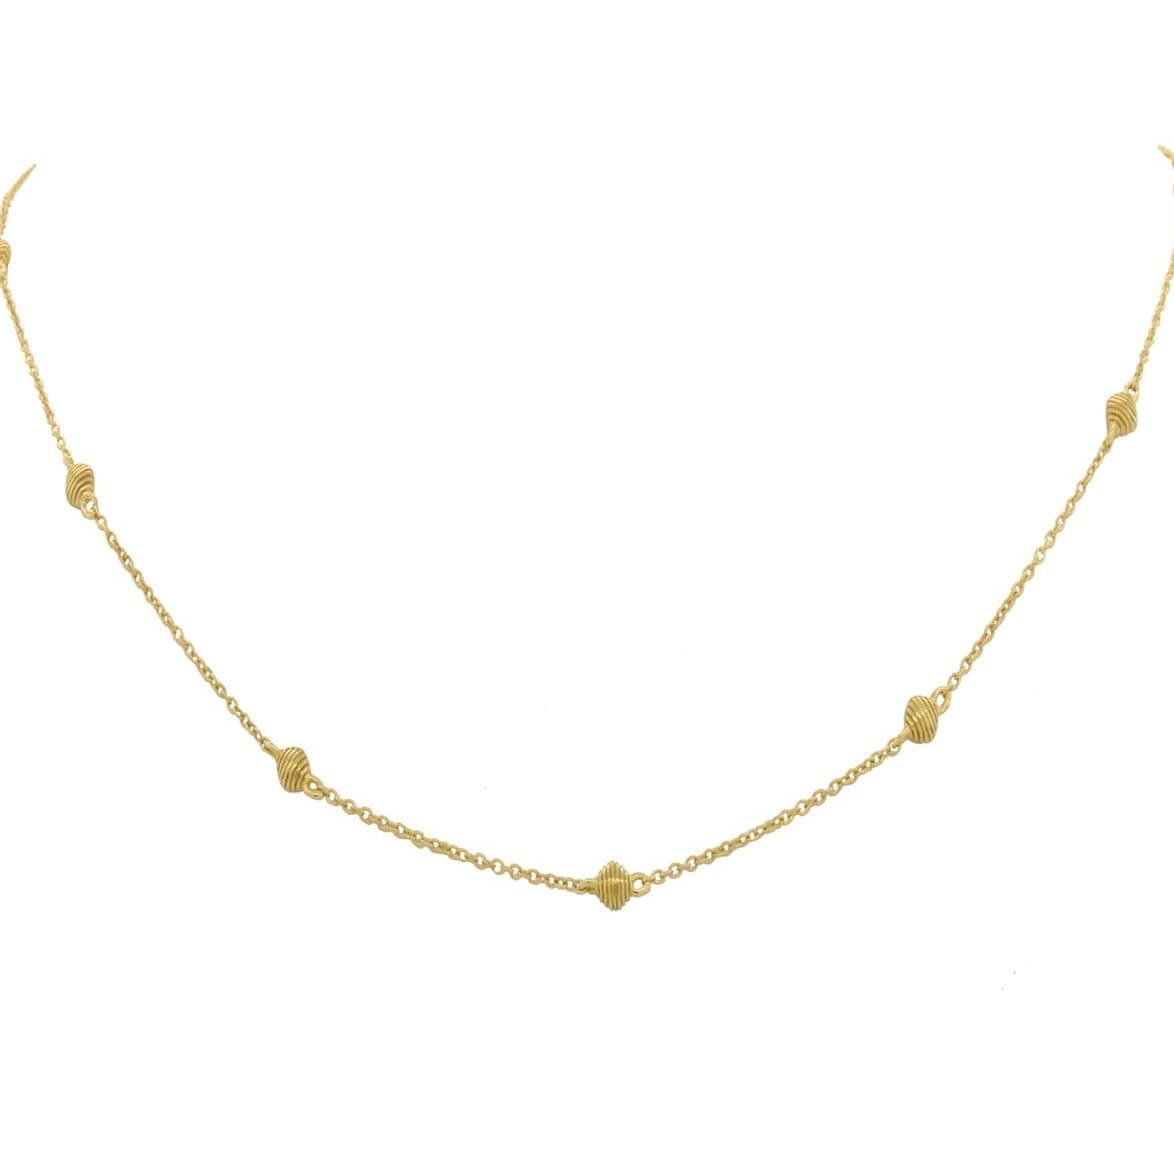 Sloane Street 18K Yellow Gold Chain With Strie Cushion Detail